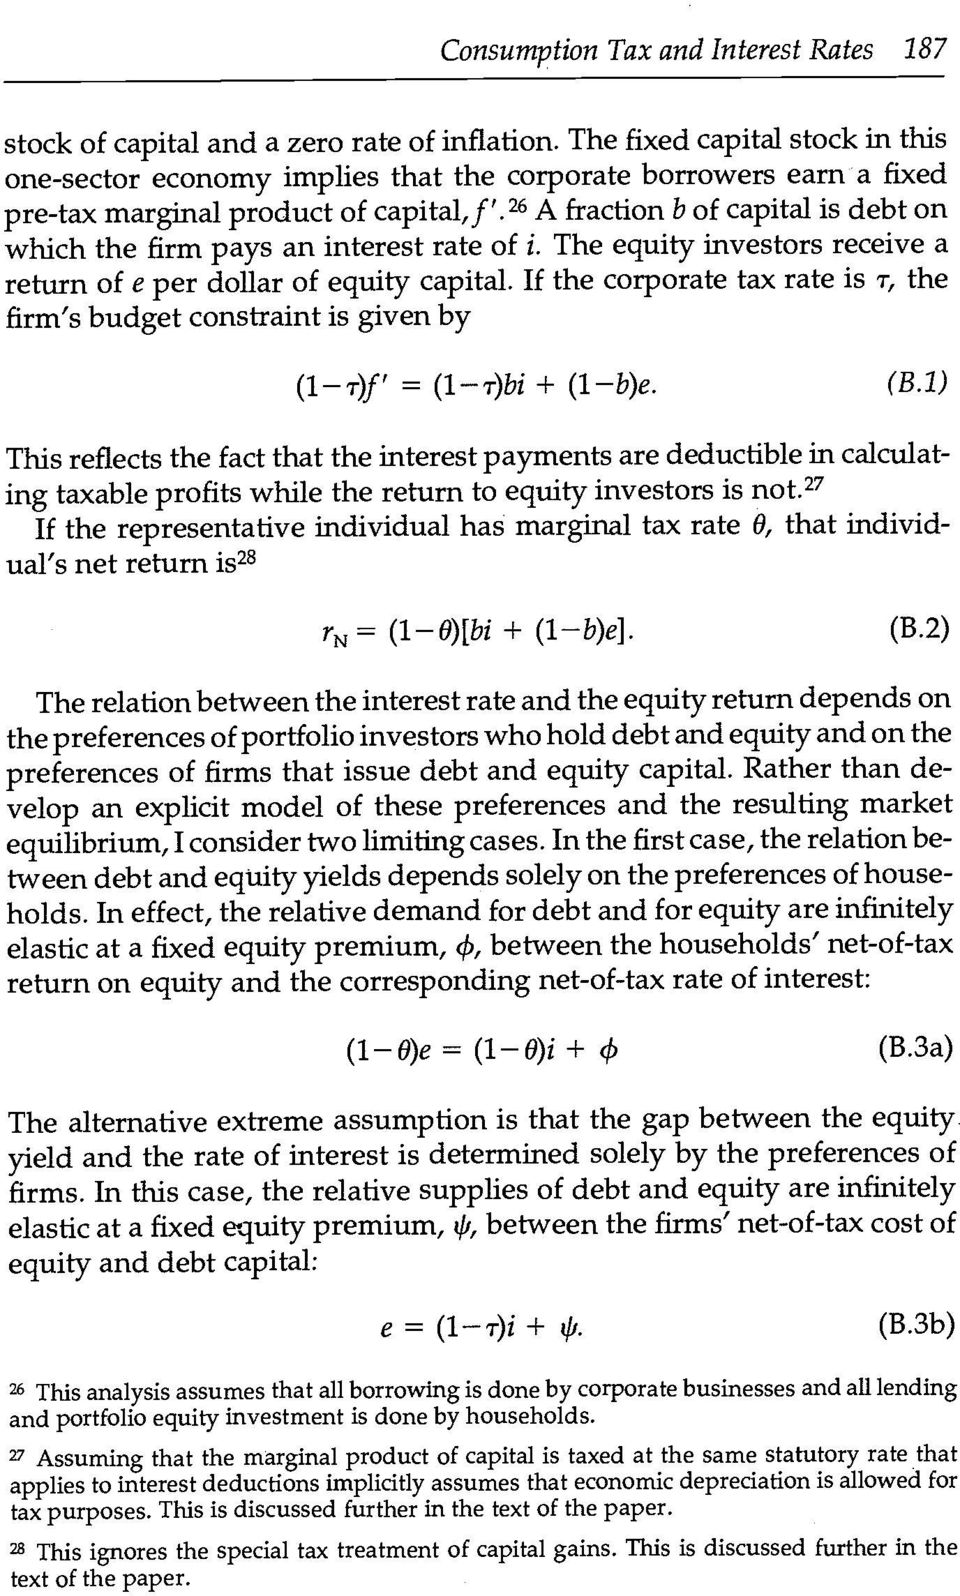 26 A fraction b of capital is debt on which the firm pays an interest rate of i. The equity investors receive a return of e per dollar of equity capital.